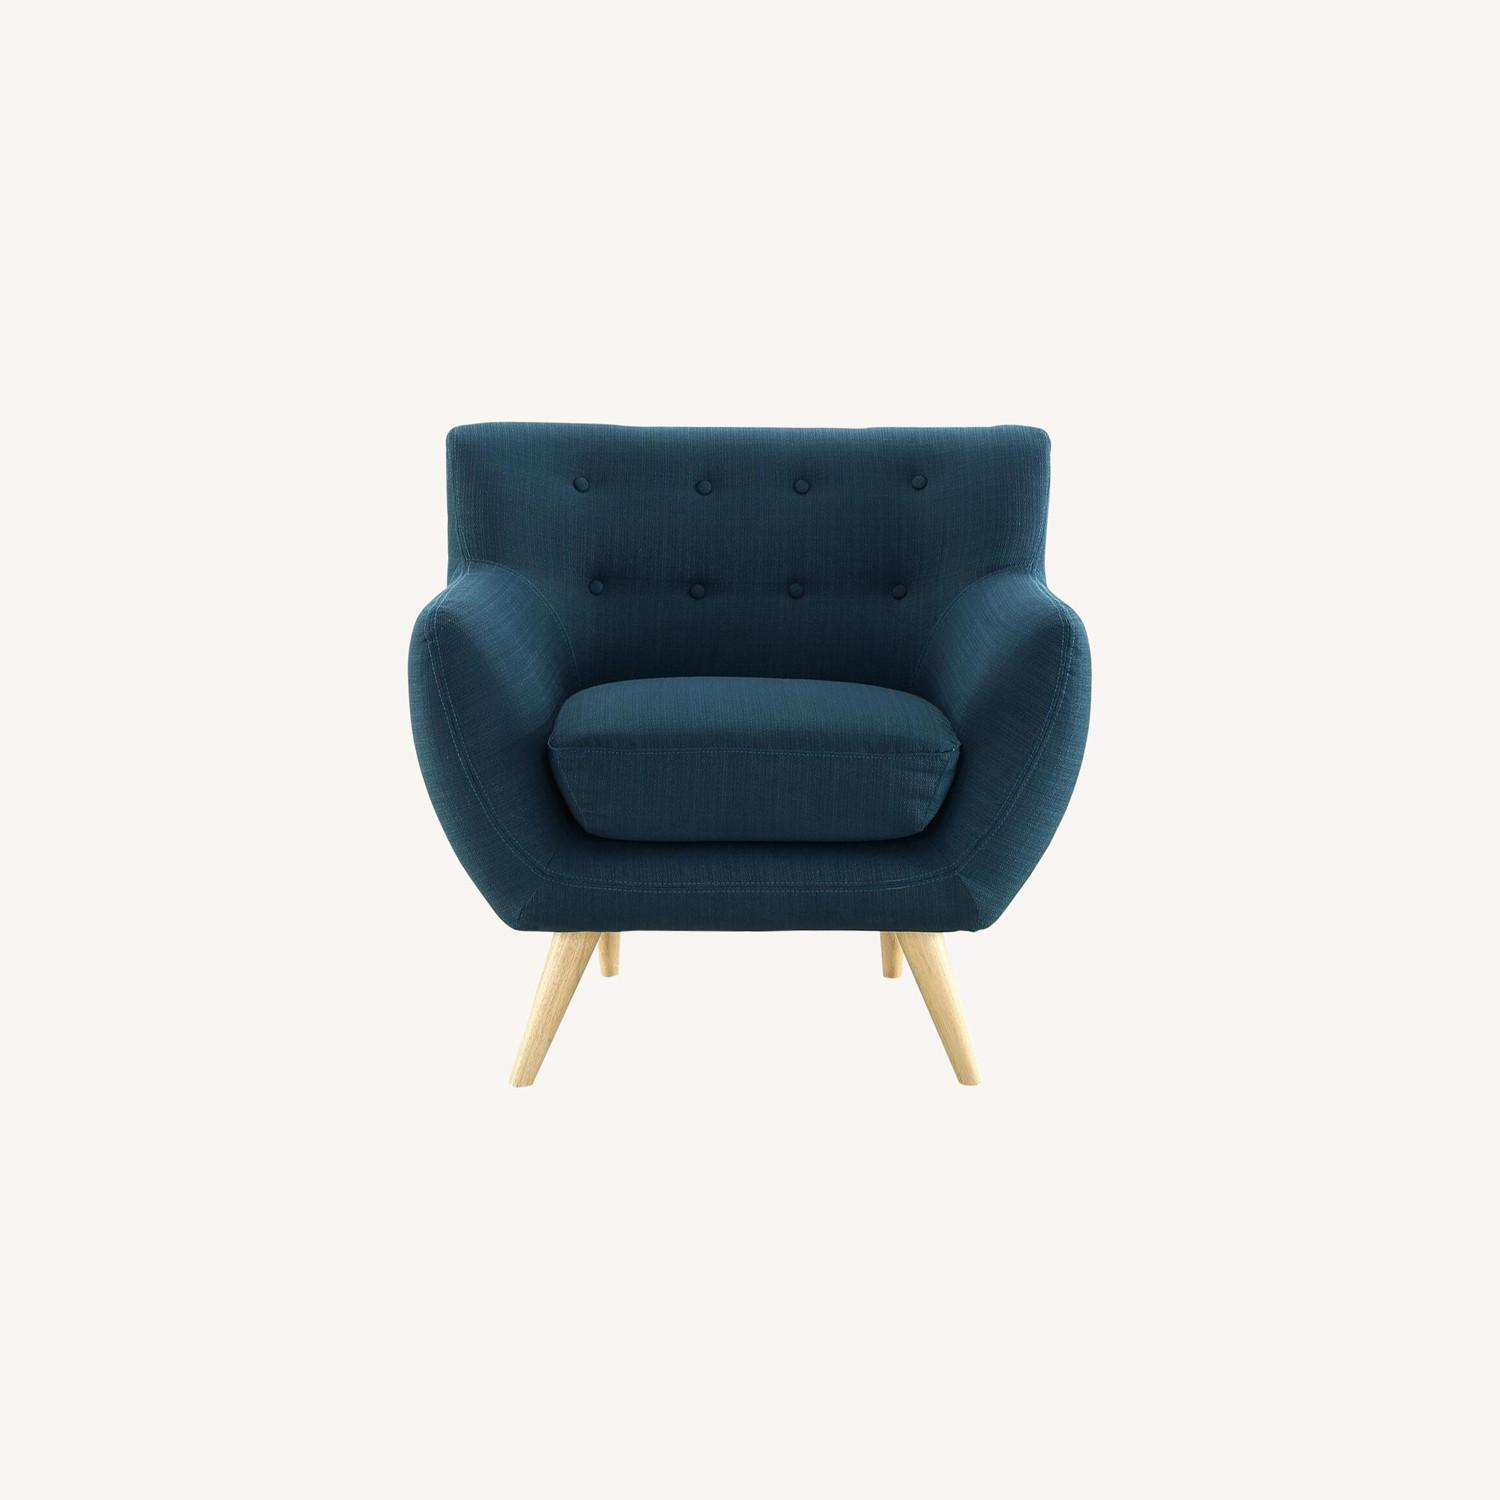 Armchair In Azure Upholstery W/ Natural Wood Legs - image-6